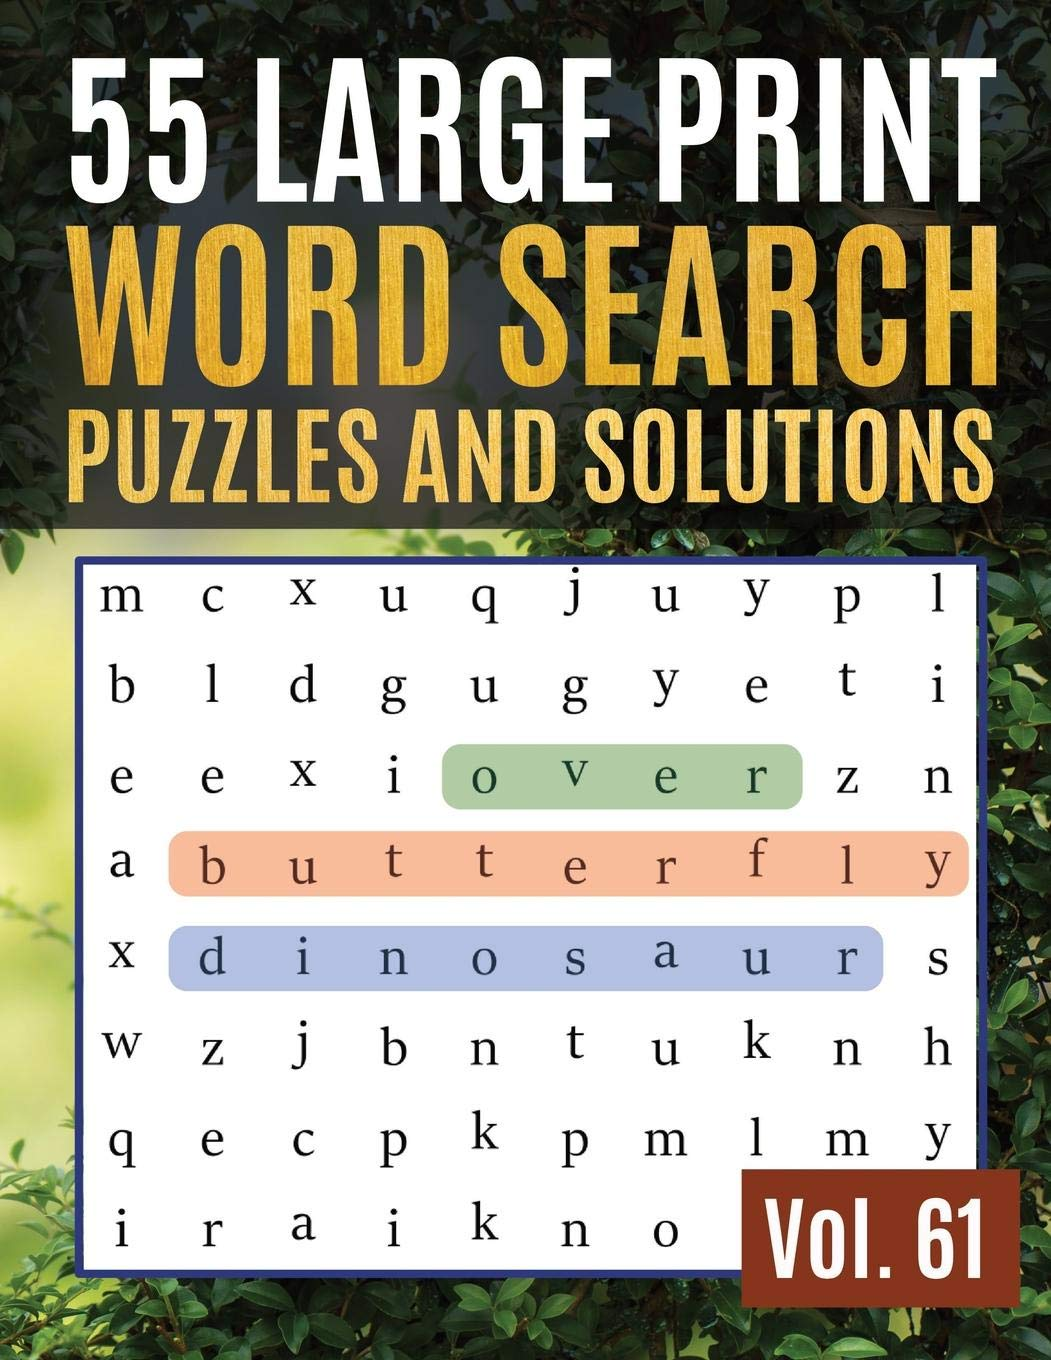 image regarding Large Print Word Search Printable named 55 Hefty Print Term Glimpse Puzzles and Services: Phrase